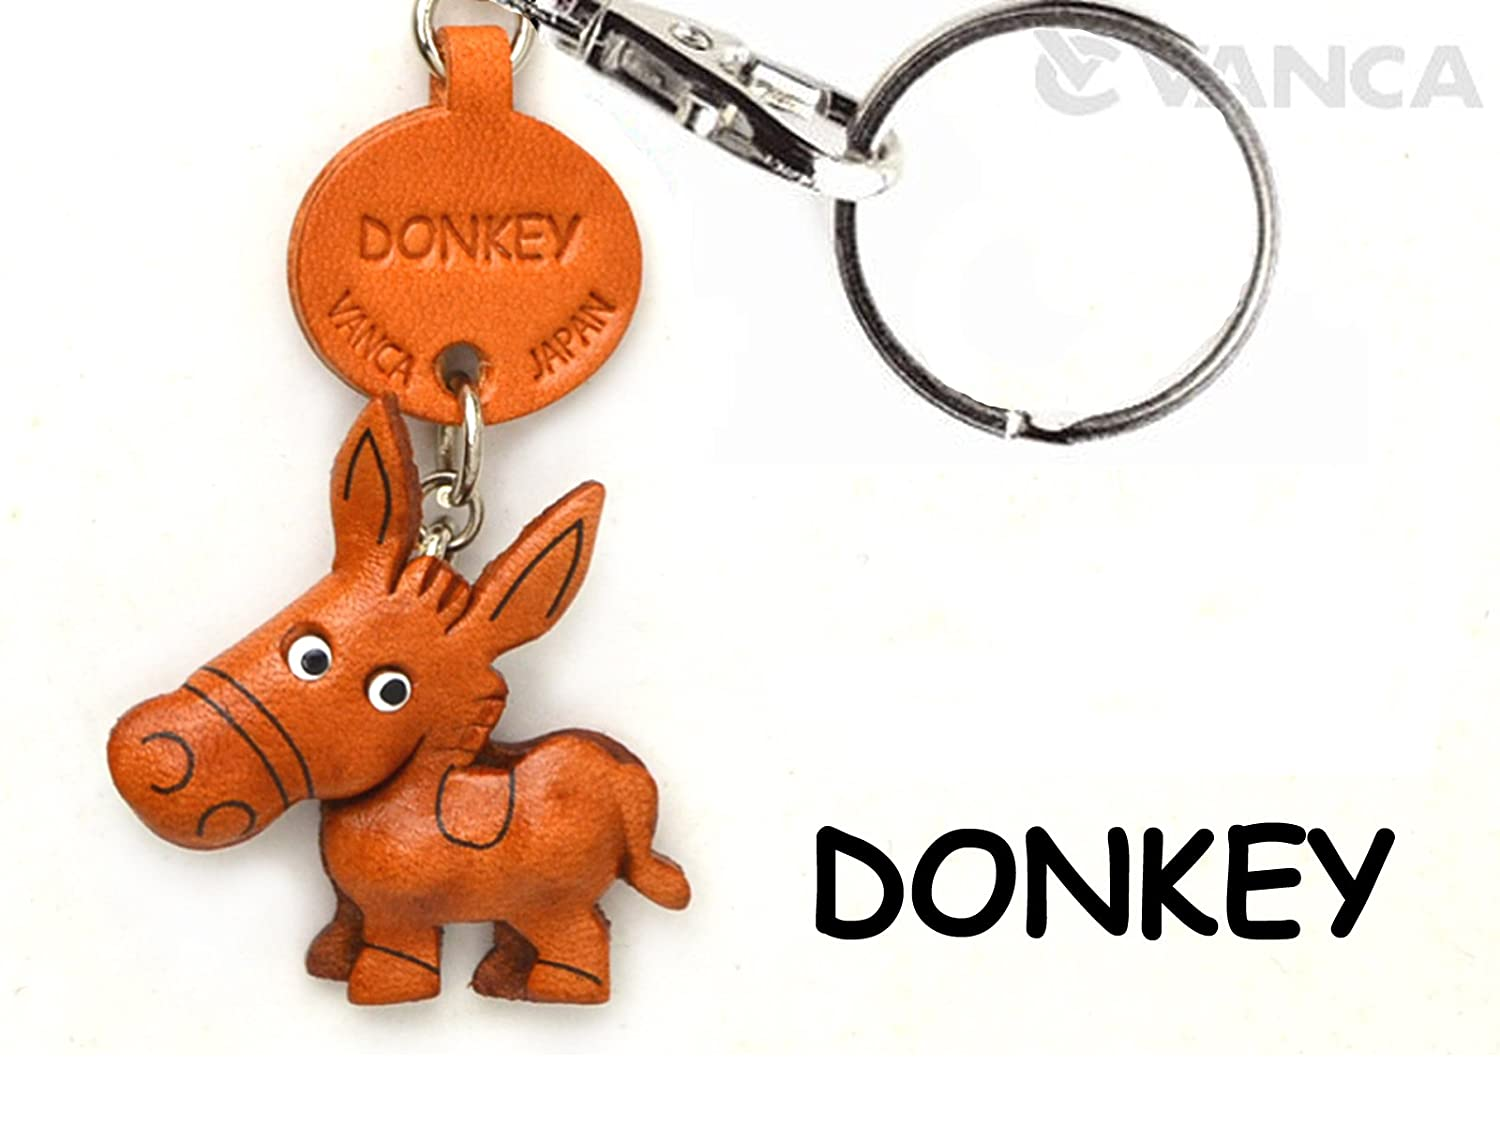 Donkey/Ass Leather Animal Small Keychain VANCA CRAFT-Collectible Keyring Charm Pendant Made in Japan VANCA CRAFT INC. 4326549867